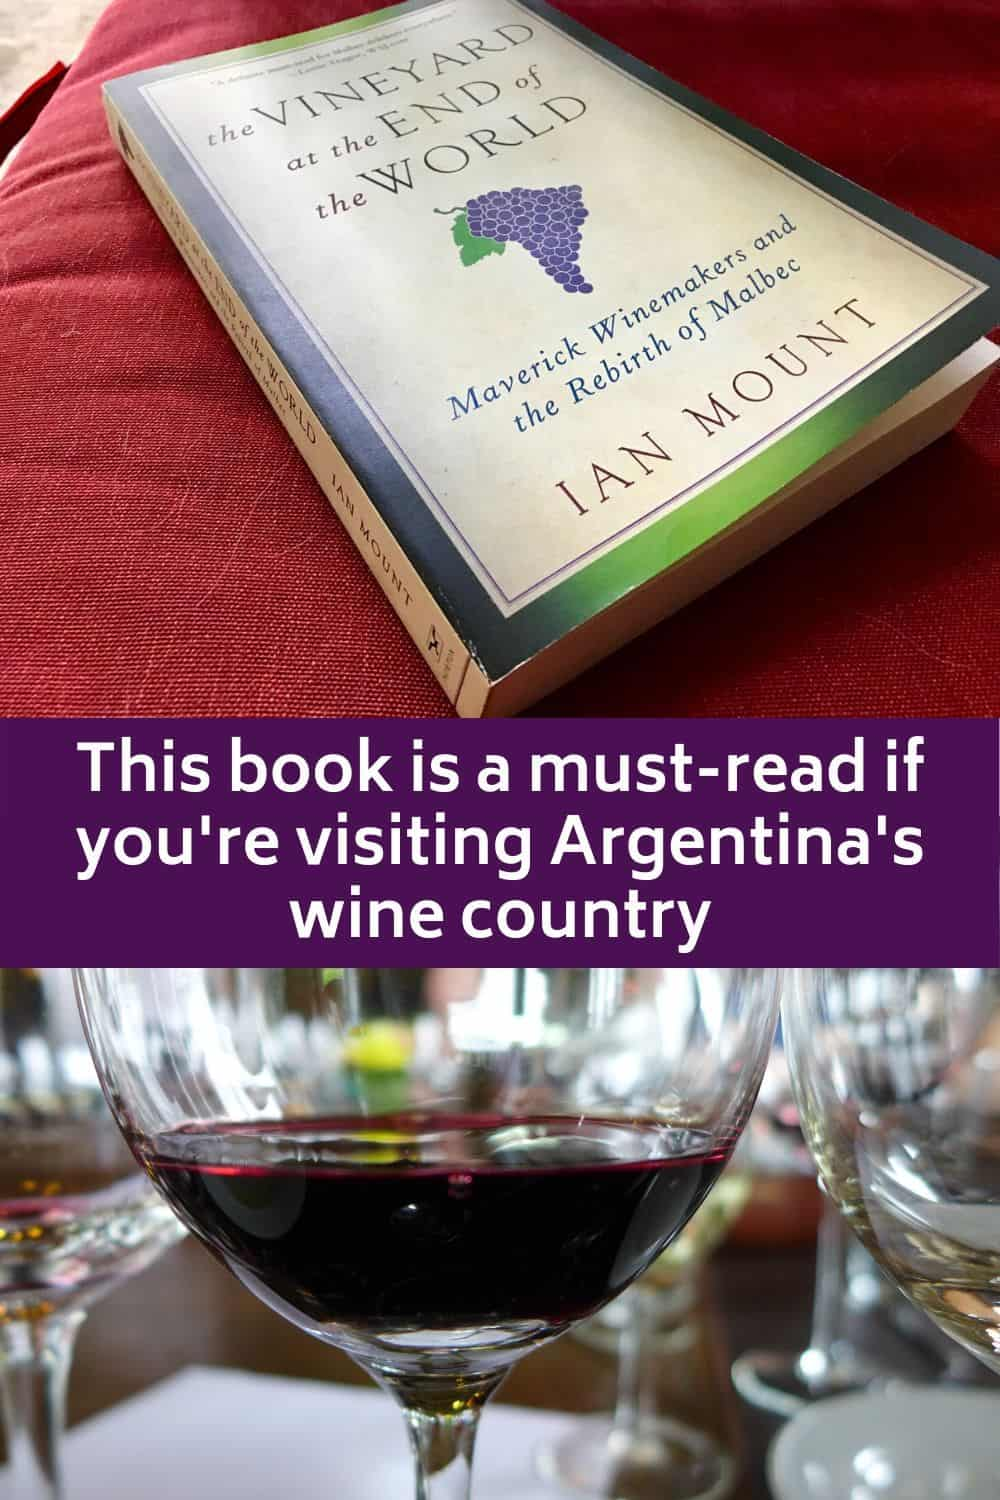 History of Argentina's wine industry book: Vineyard at the End of the World